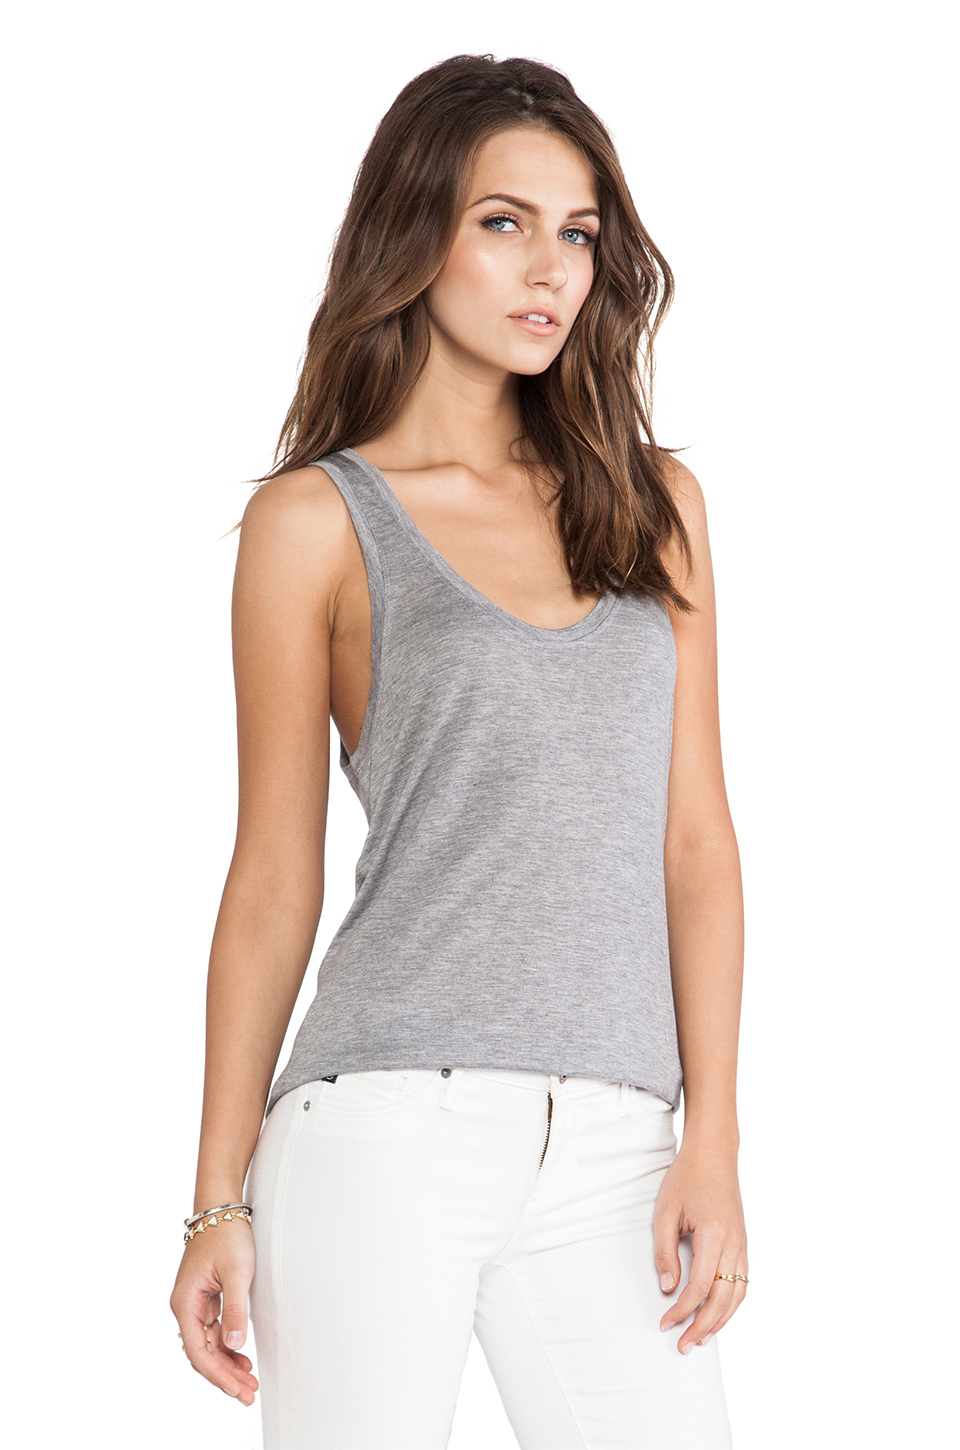 AG Adriano Goldschmied Wren Tank in Heather Grey from REVOLVEclothing.com